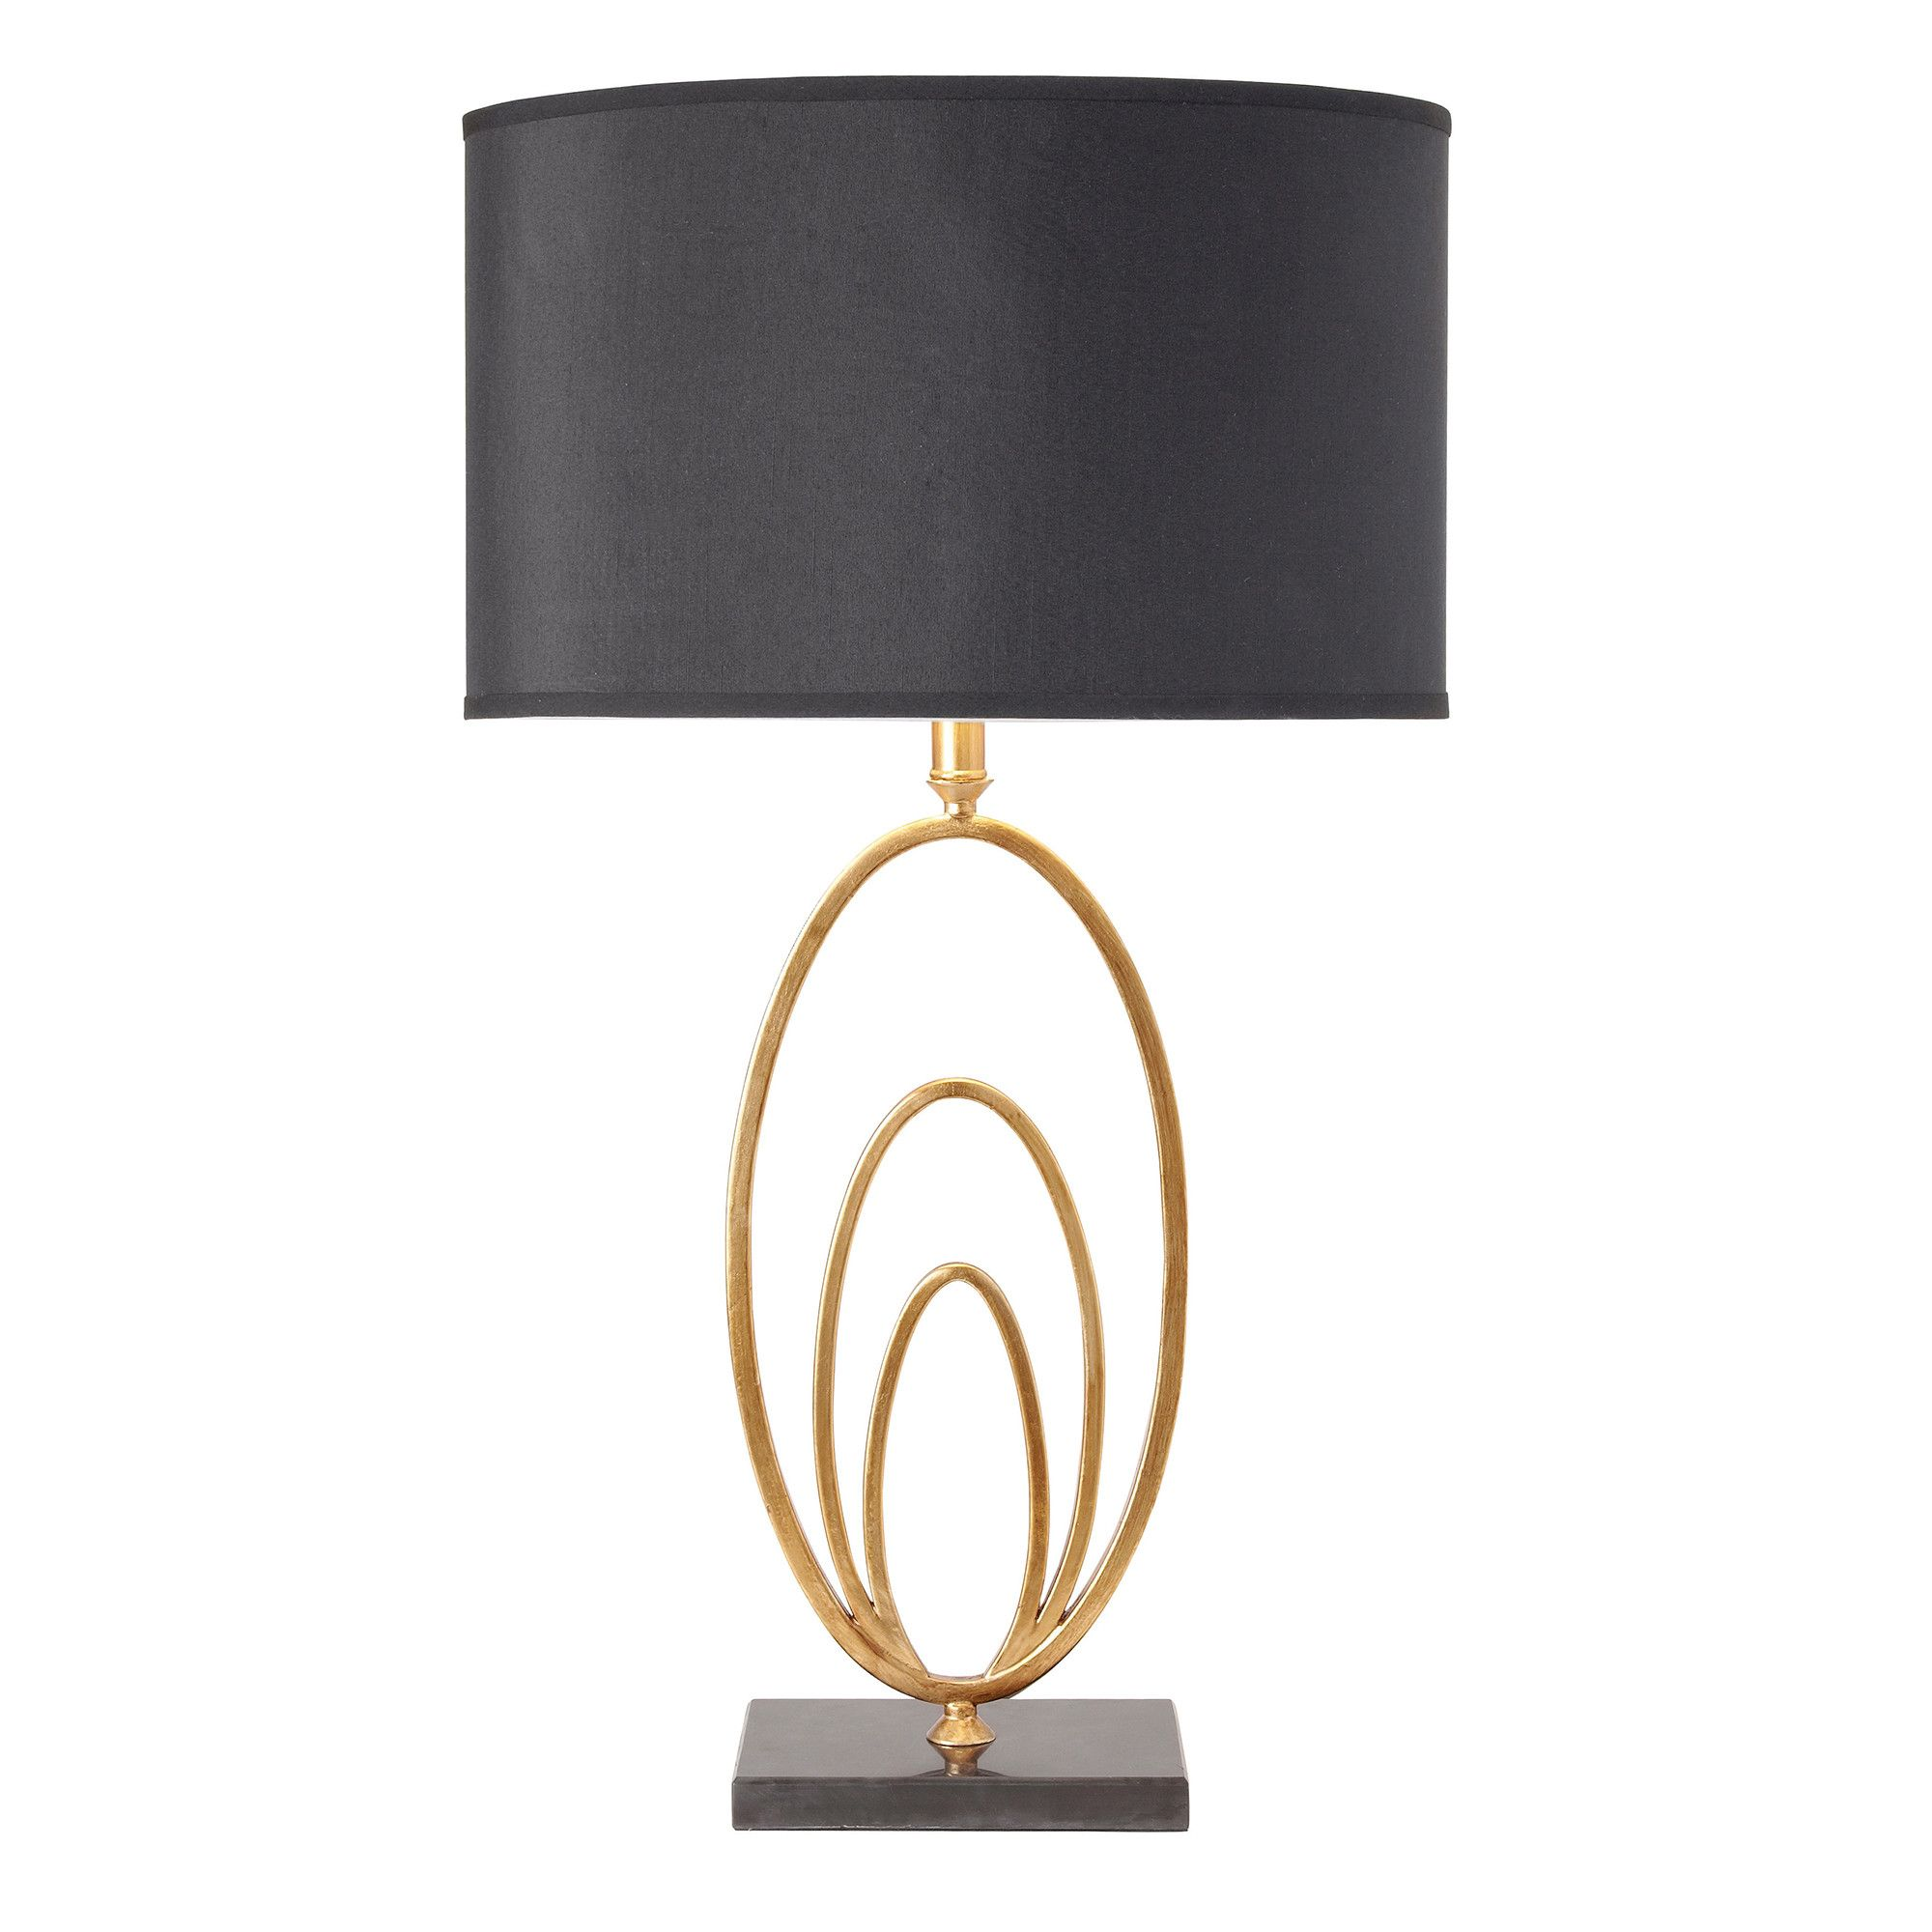 Hallway lighting modern  Add a sense of contemporary elegance to your coffee table or hallway